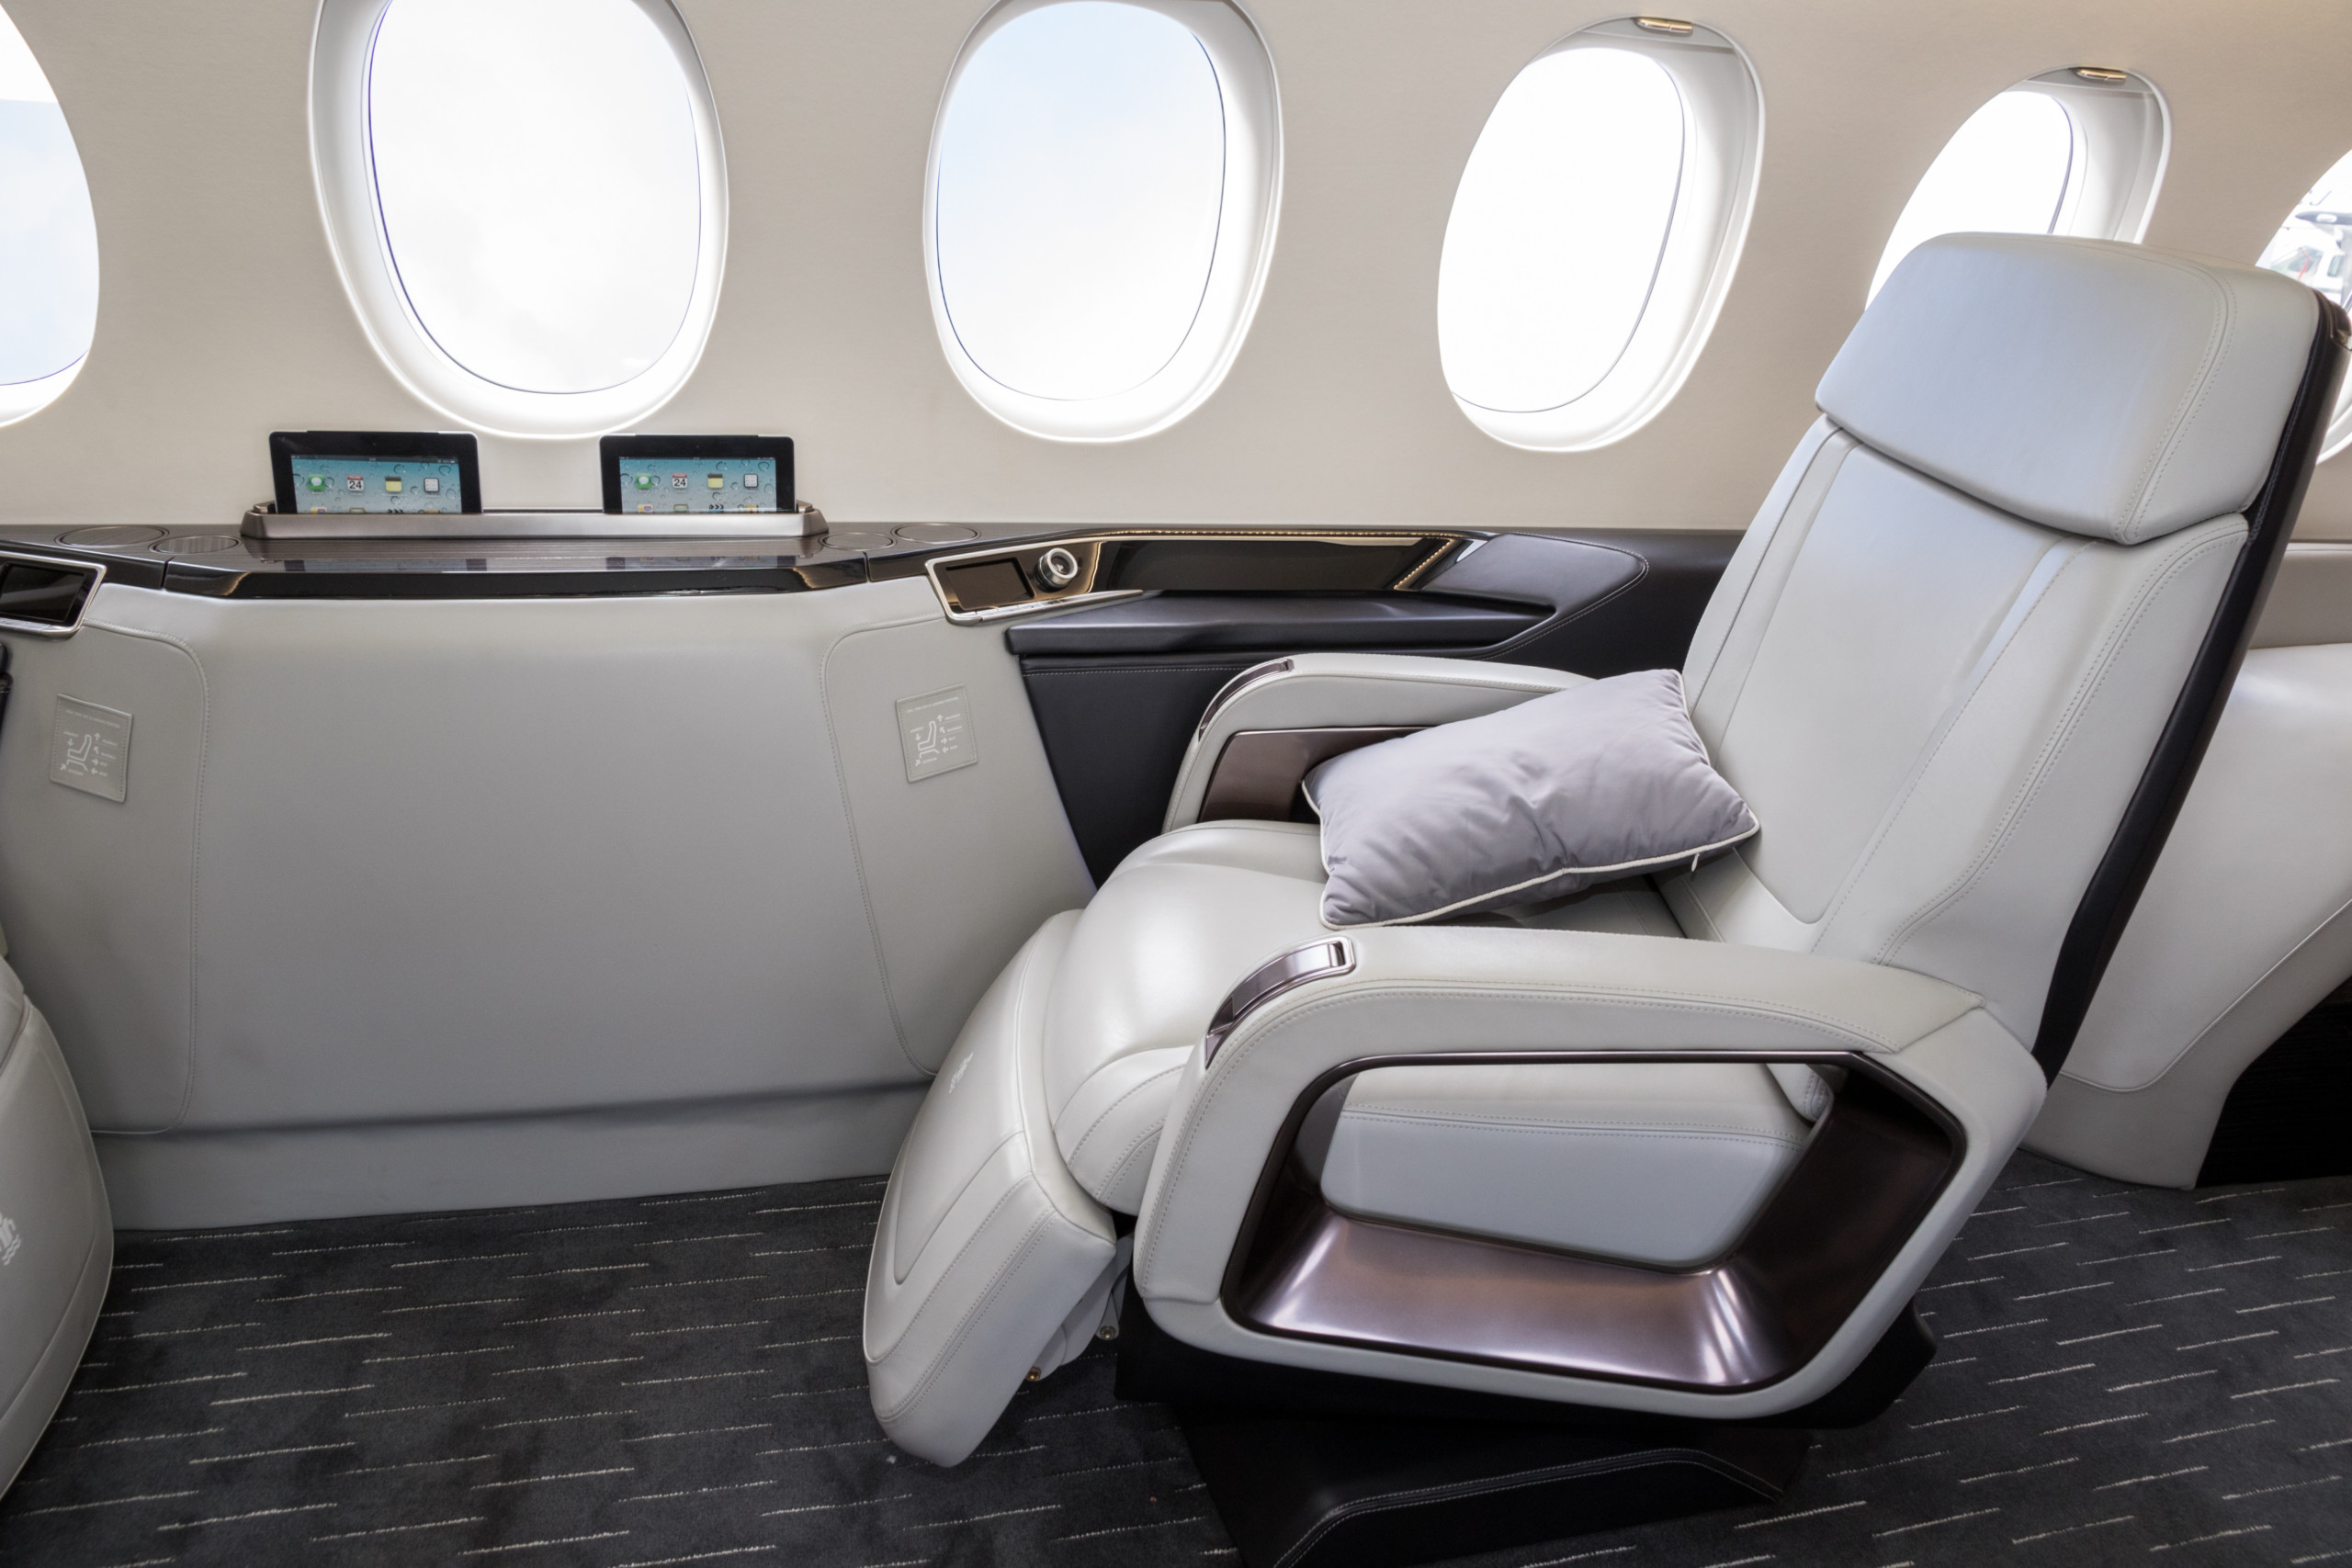 How Airlines Are Shifting Their Focus Towards Passenger Comfort